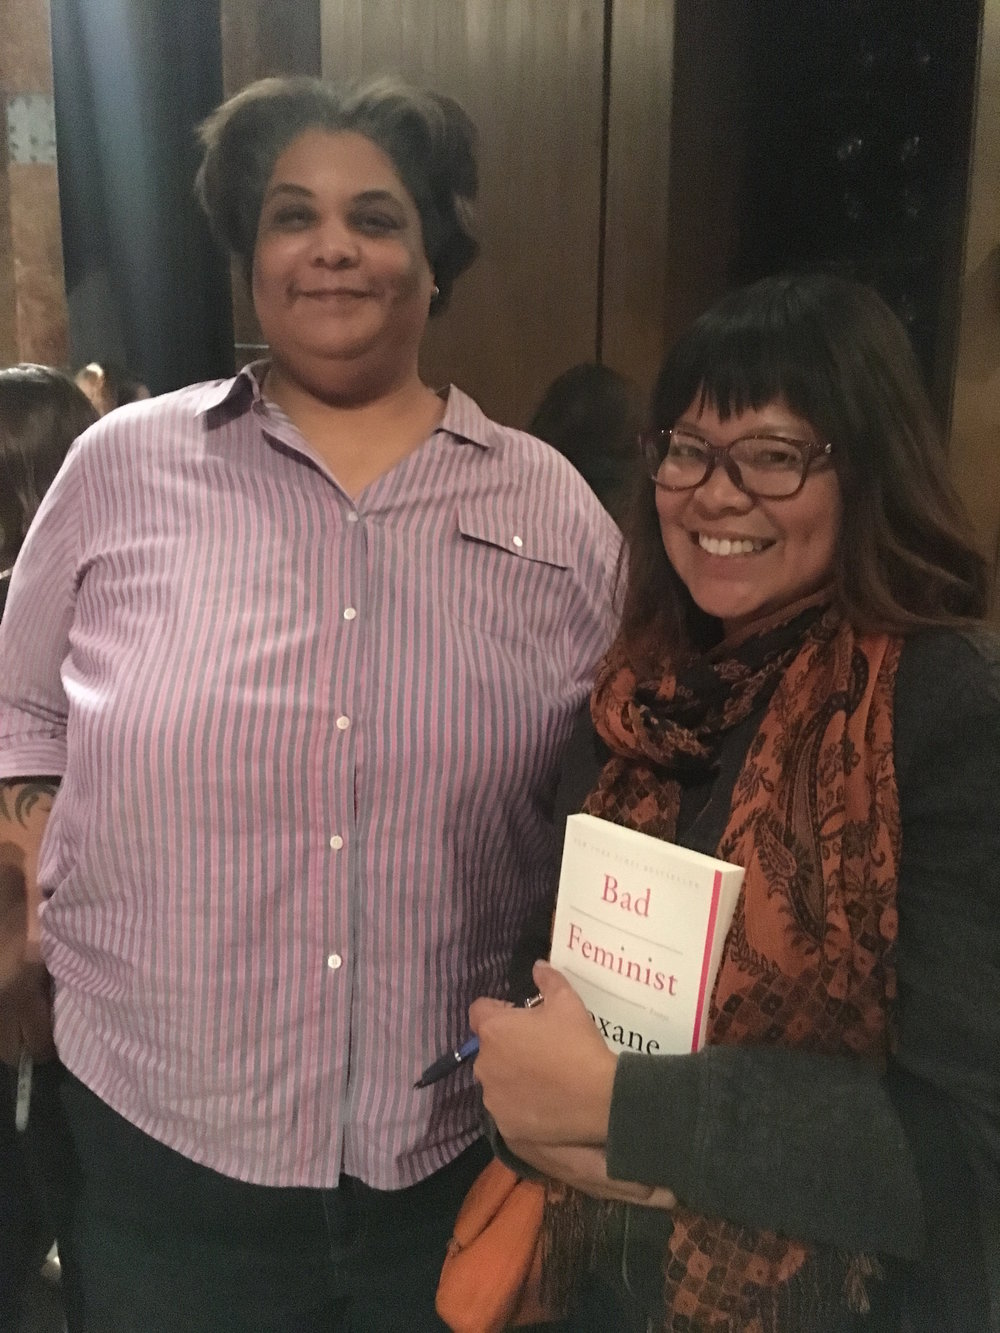 Meeting the fierce Ms. Gay at a speaking engagement Oct. 2016. I'm a hugger but she asked the audience to refrain from asking her for one so I gladly respected her wishes.